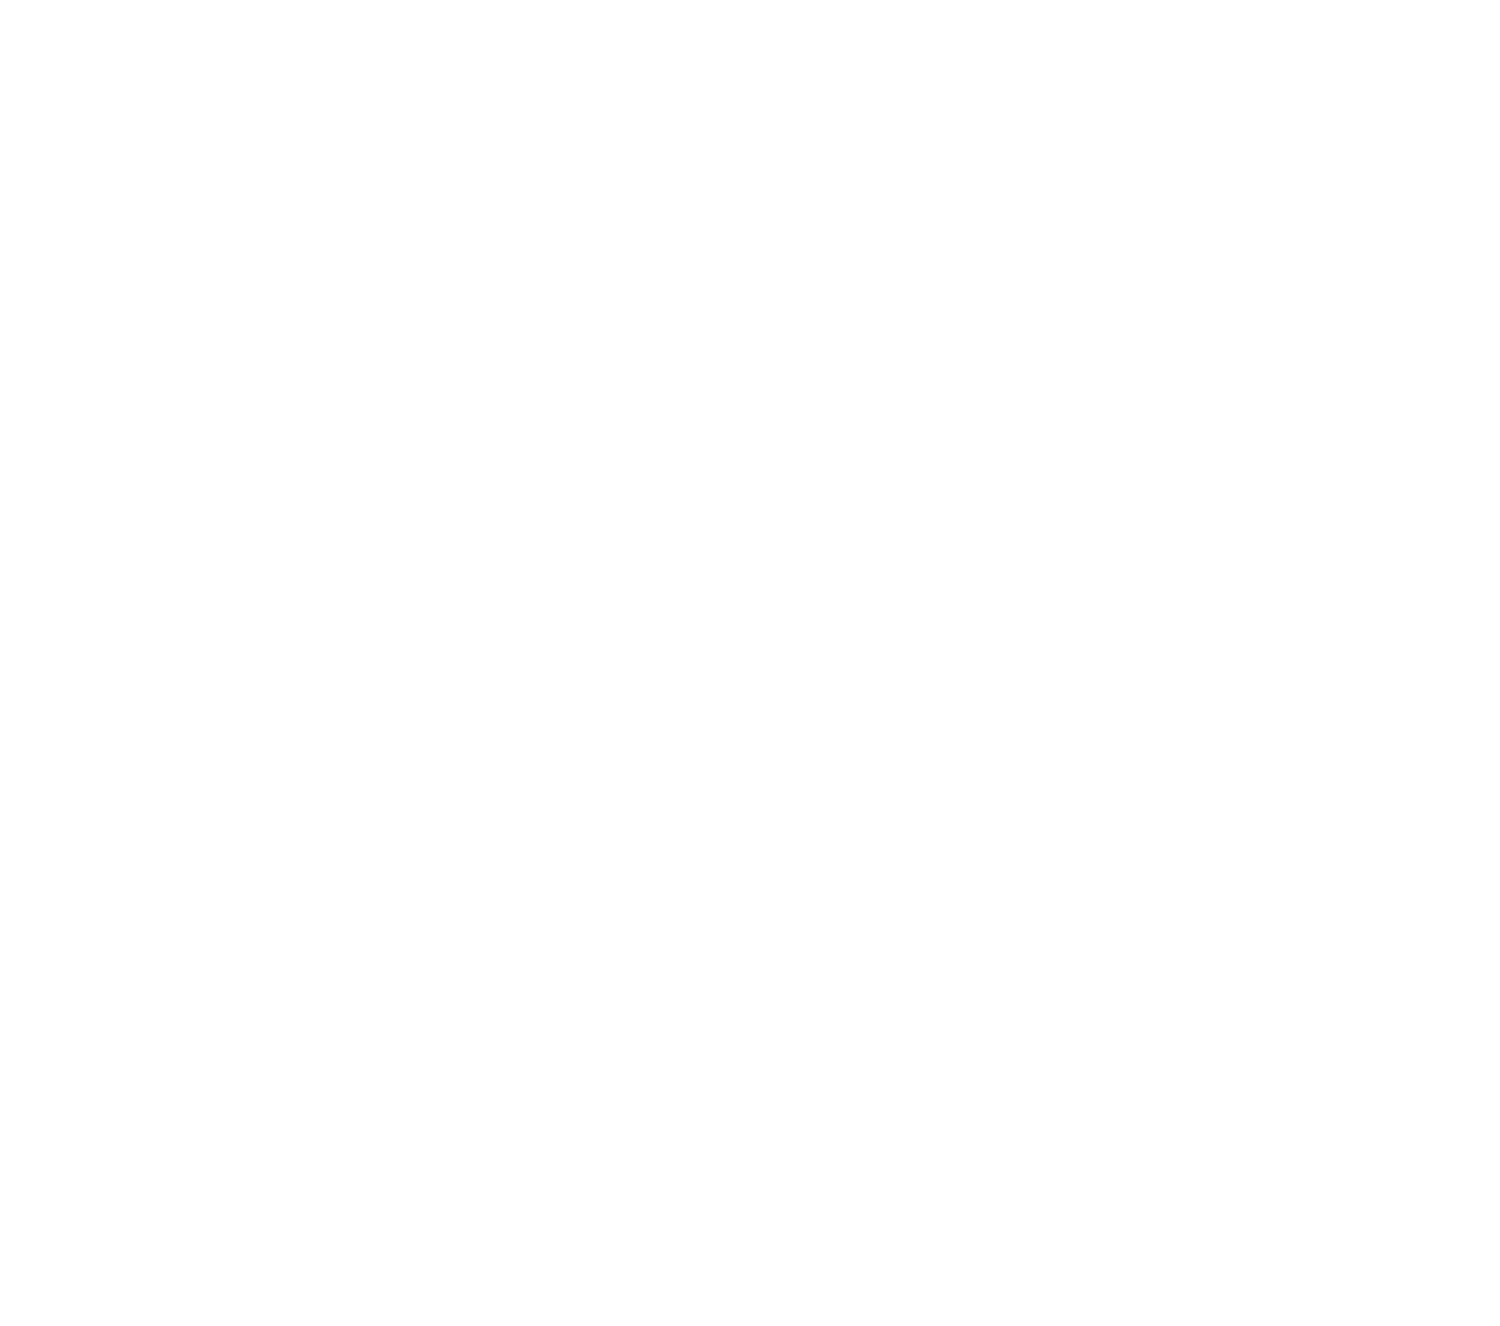 Bilmar Veterinary Services